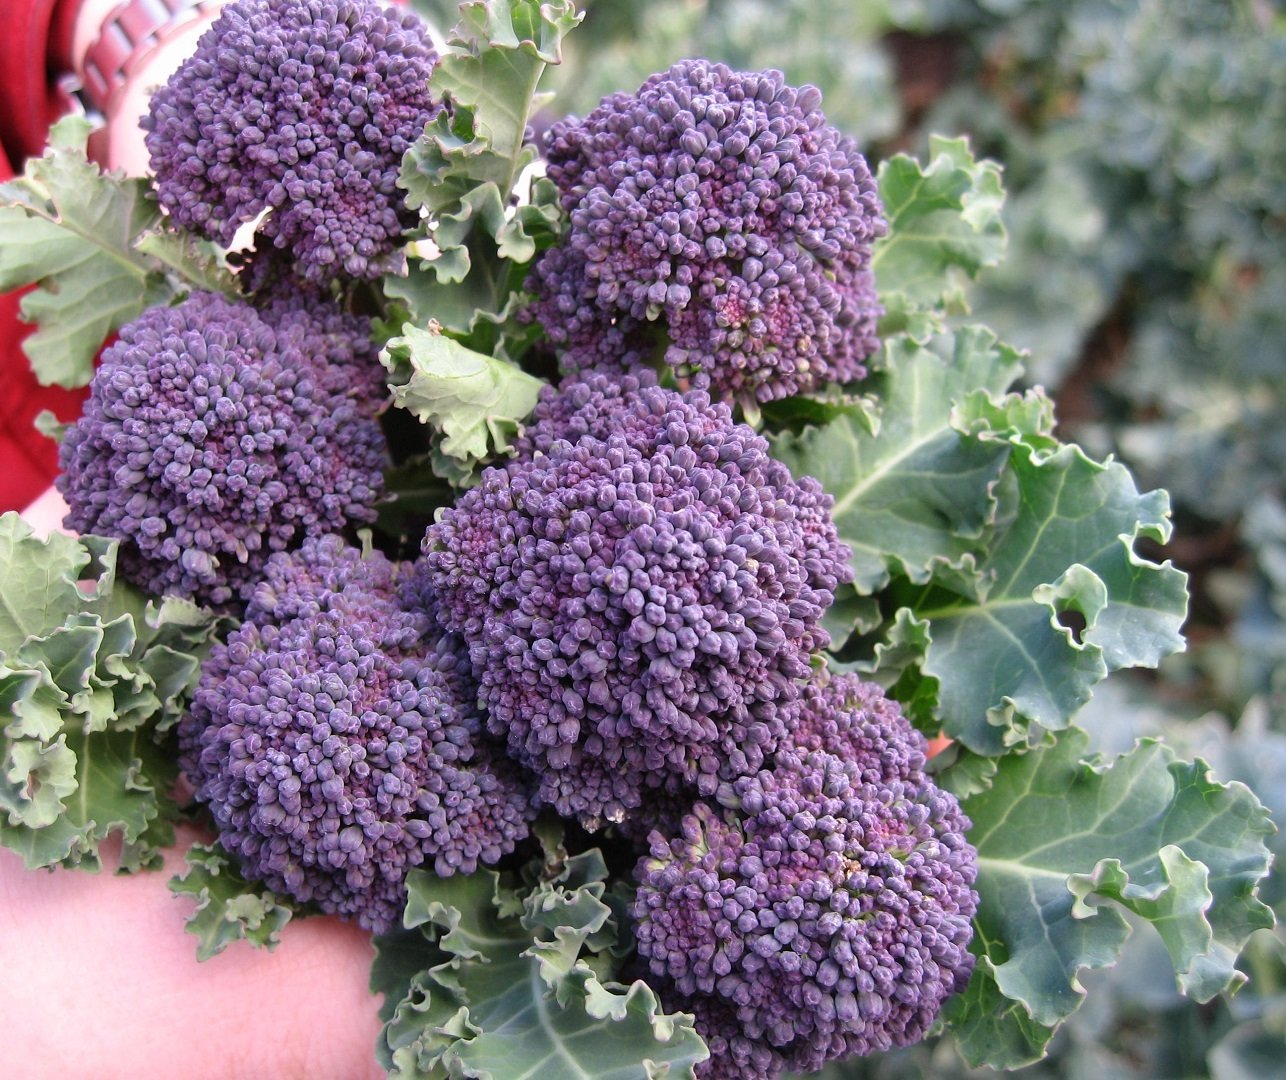 Broccoli Early Purple Sprouting 650 (2g) Seeds - VIRIDIS HORTUS